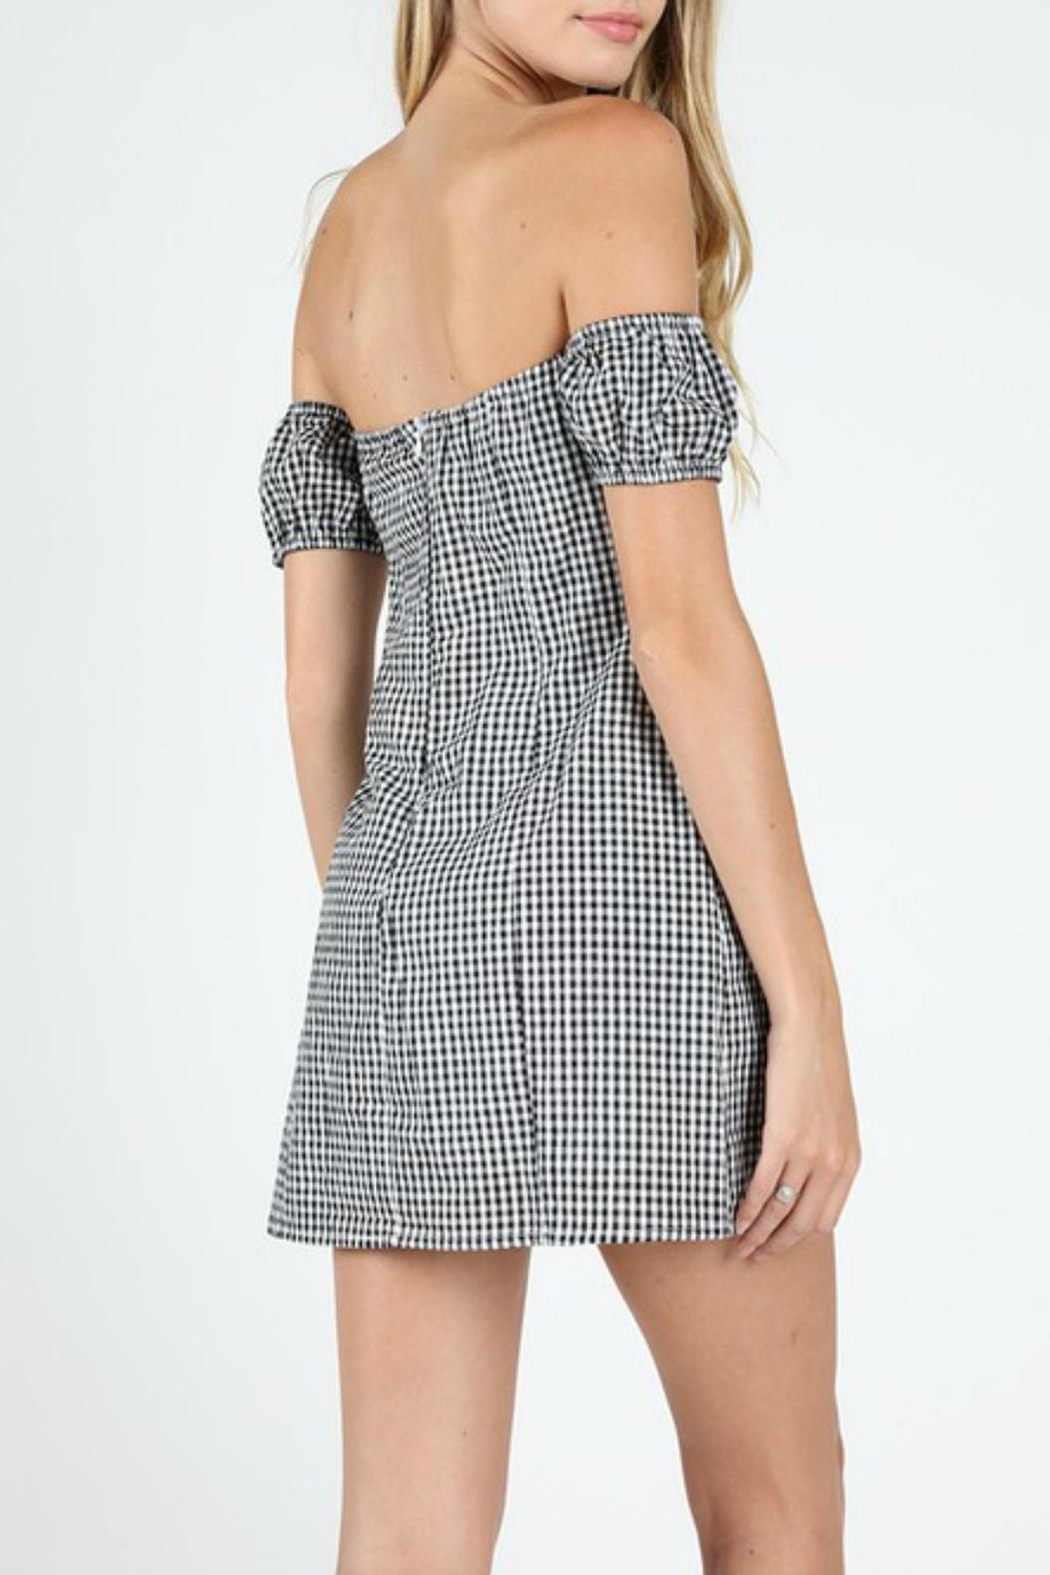 Pretty Little Things Sweetheart Gingham Dress - Front Full Image